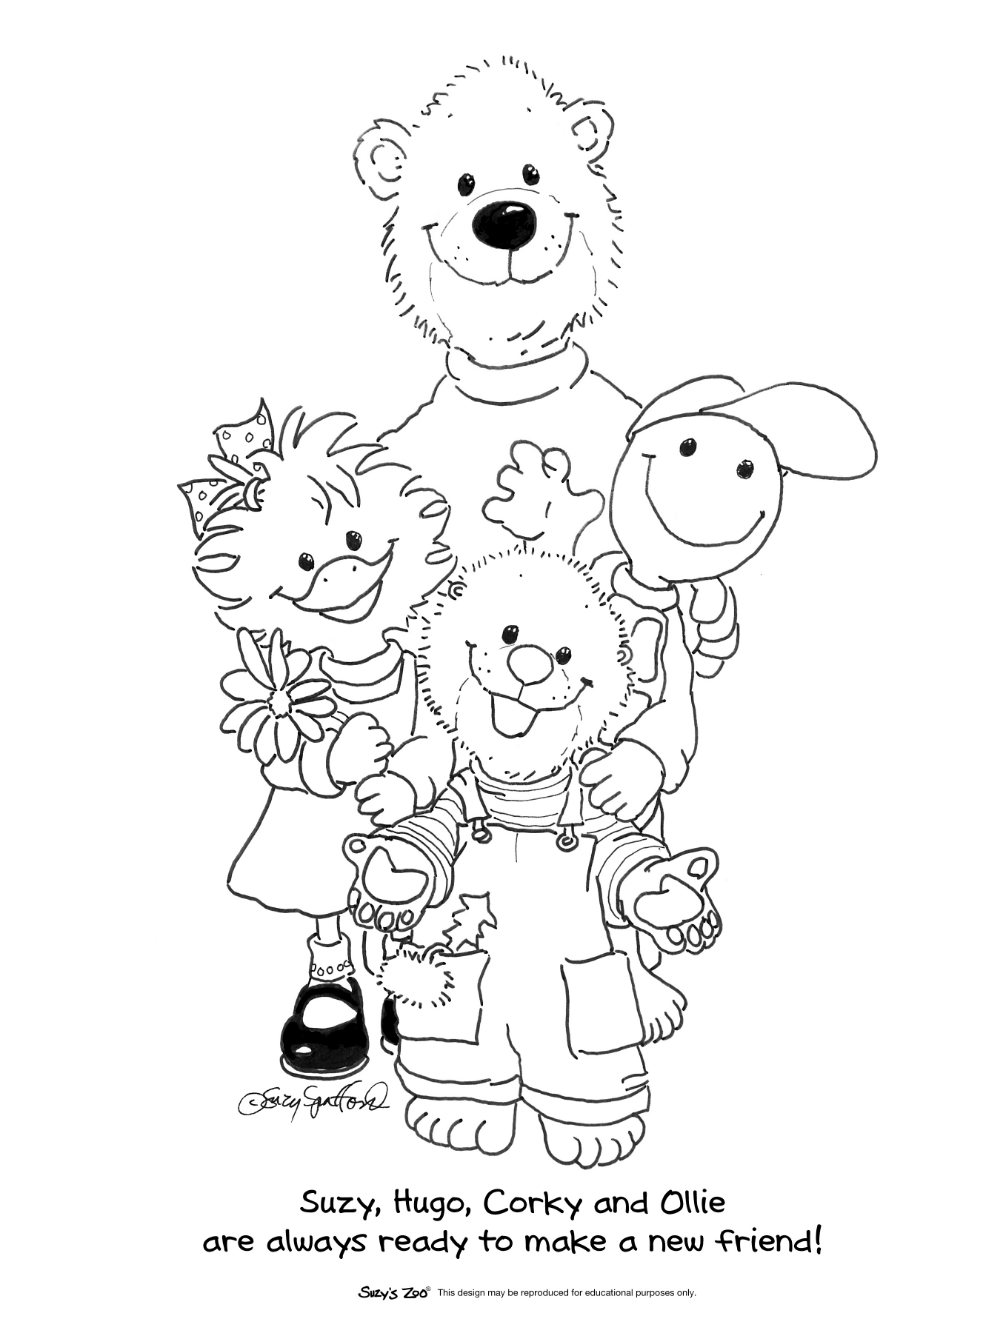 Pin By Resa Eastwood On Prek Back To School Zoo Animal Coloring Pages Animal Coloring Pages Animal Coloring Books [ 1333 x 1000 Pixel ]